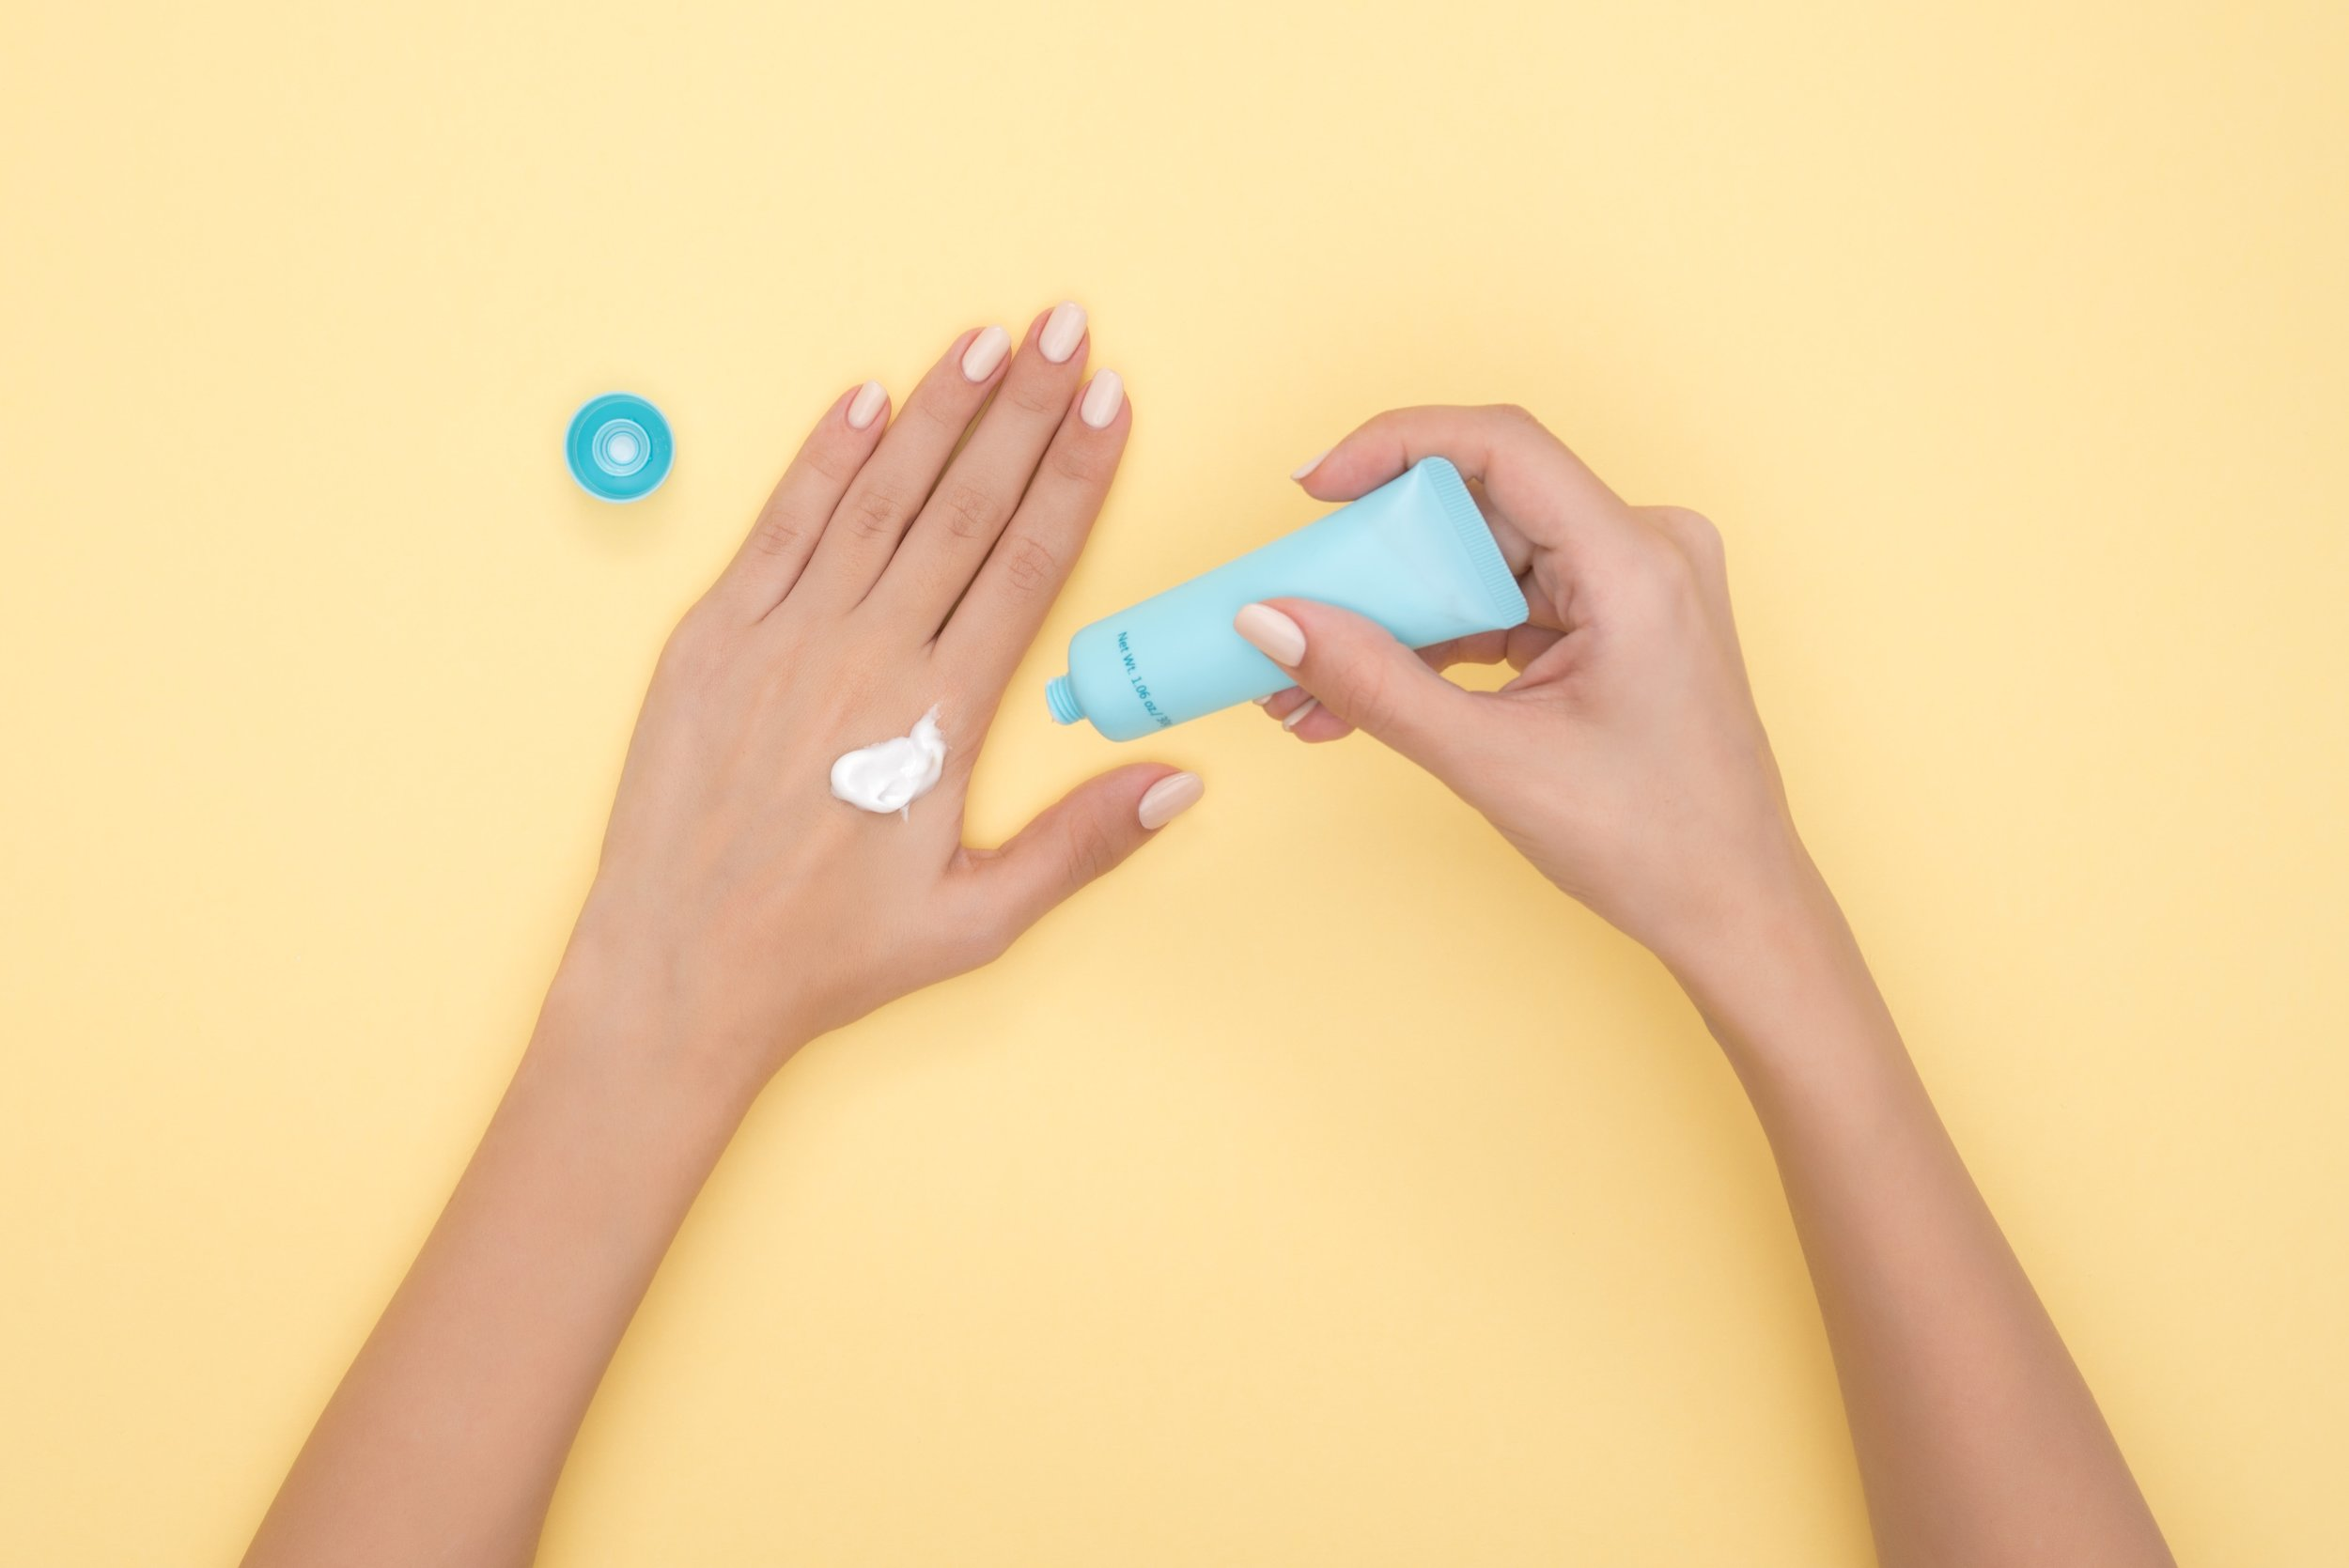 A woman puts lotion on her hand